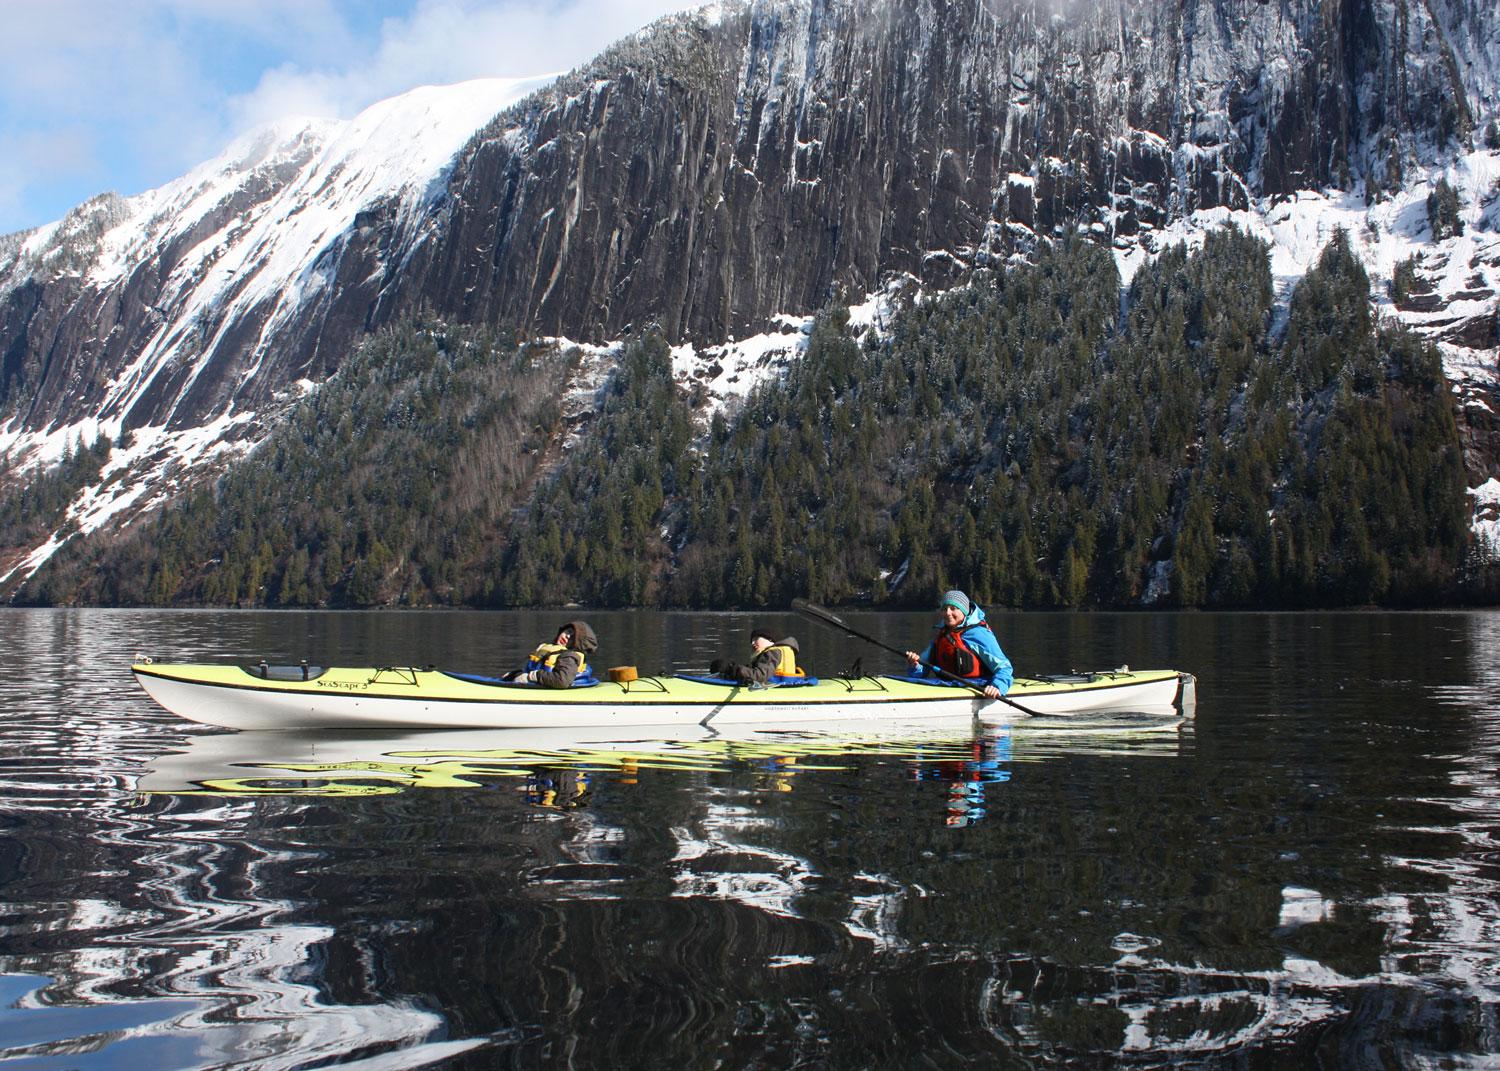 Spring break kayaking in Misty Fjords National Monument. Triple kayaks are great for families. Northwest Kayaks' Seascape 3 is our favorite; it has a huge rudder and is very easy to paddle even with 2 kids in the front.